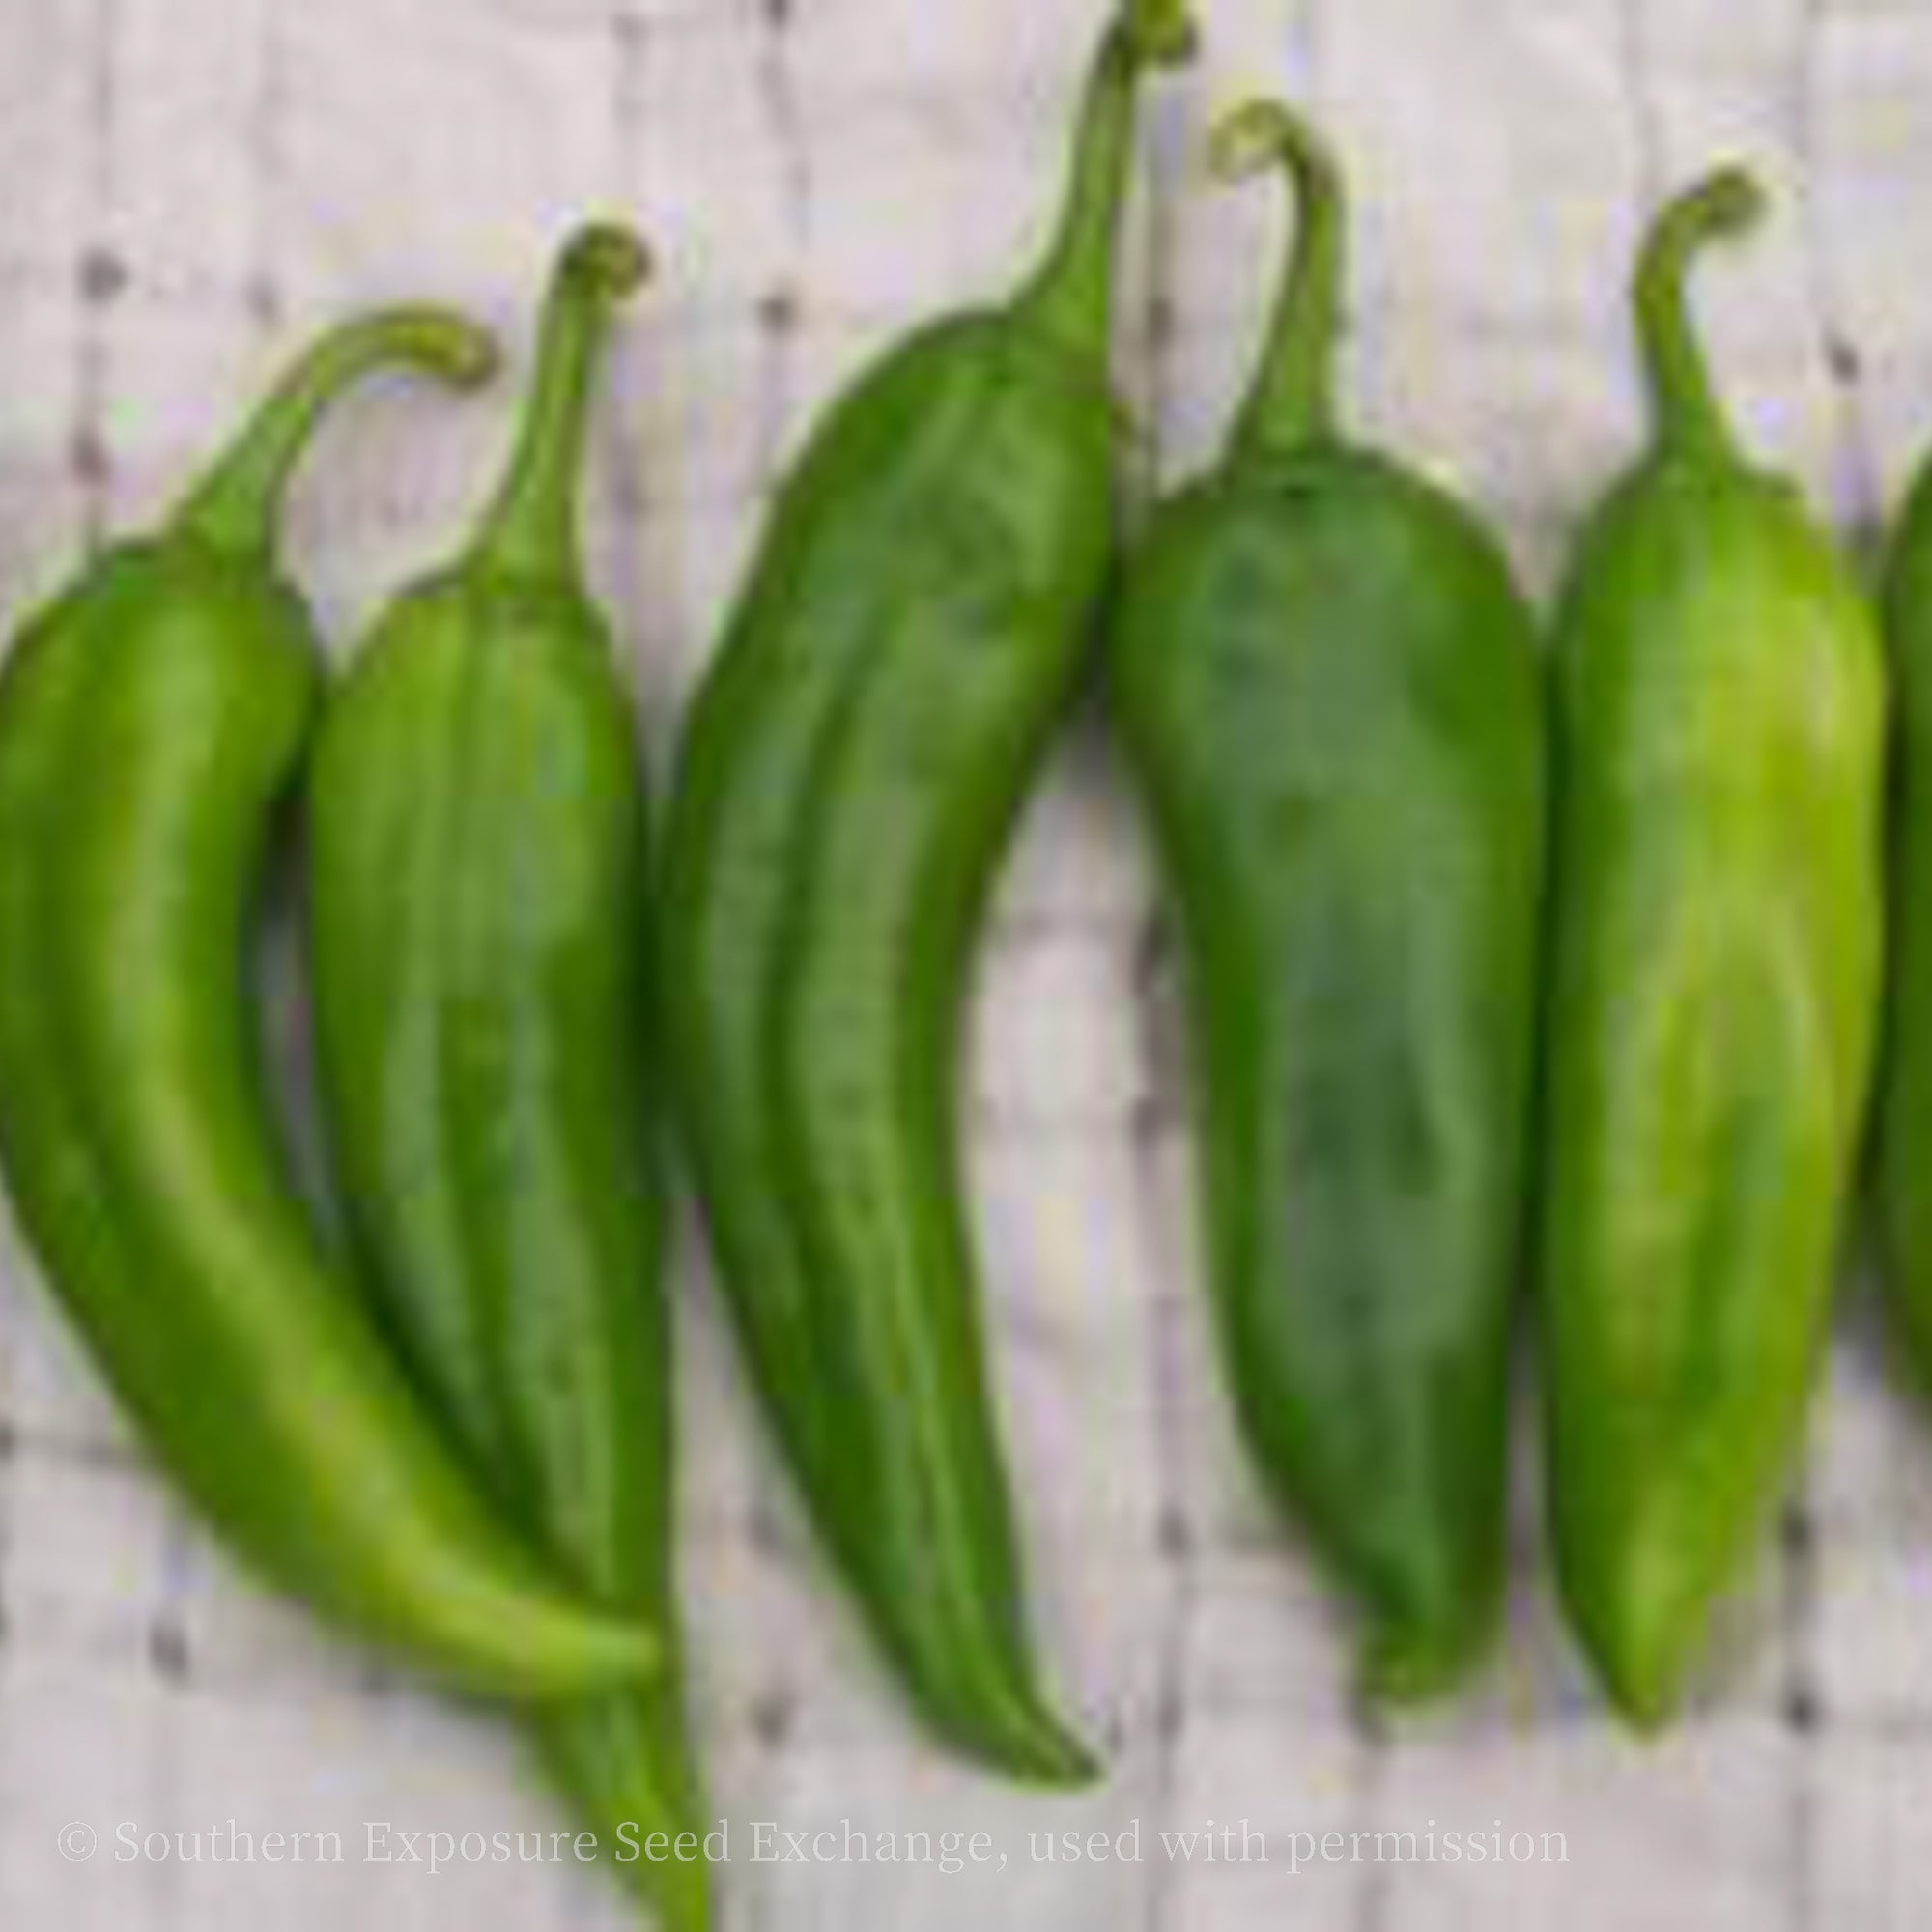 Anaheim Chile Pepper